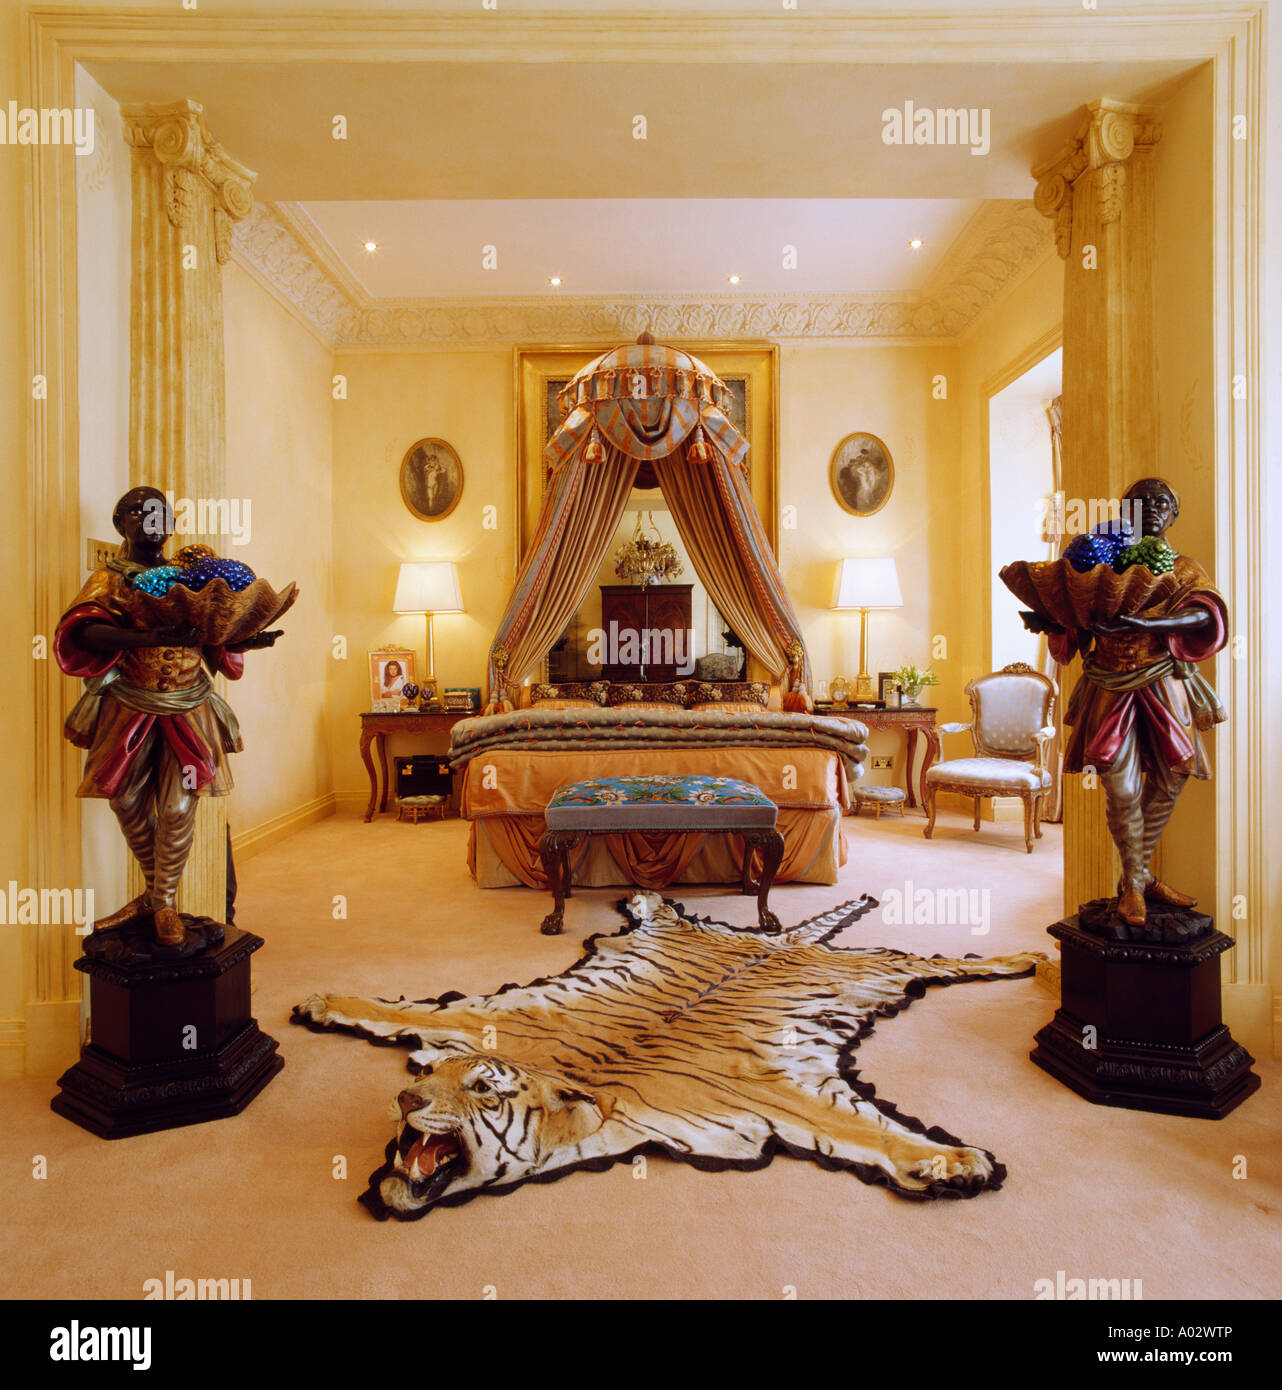 Townhouse Bedroom With Large Statues On Plinths And Tigerskin Rug On Floor    Stock Image